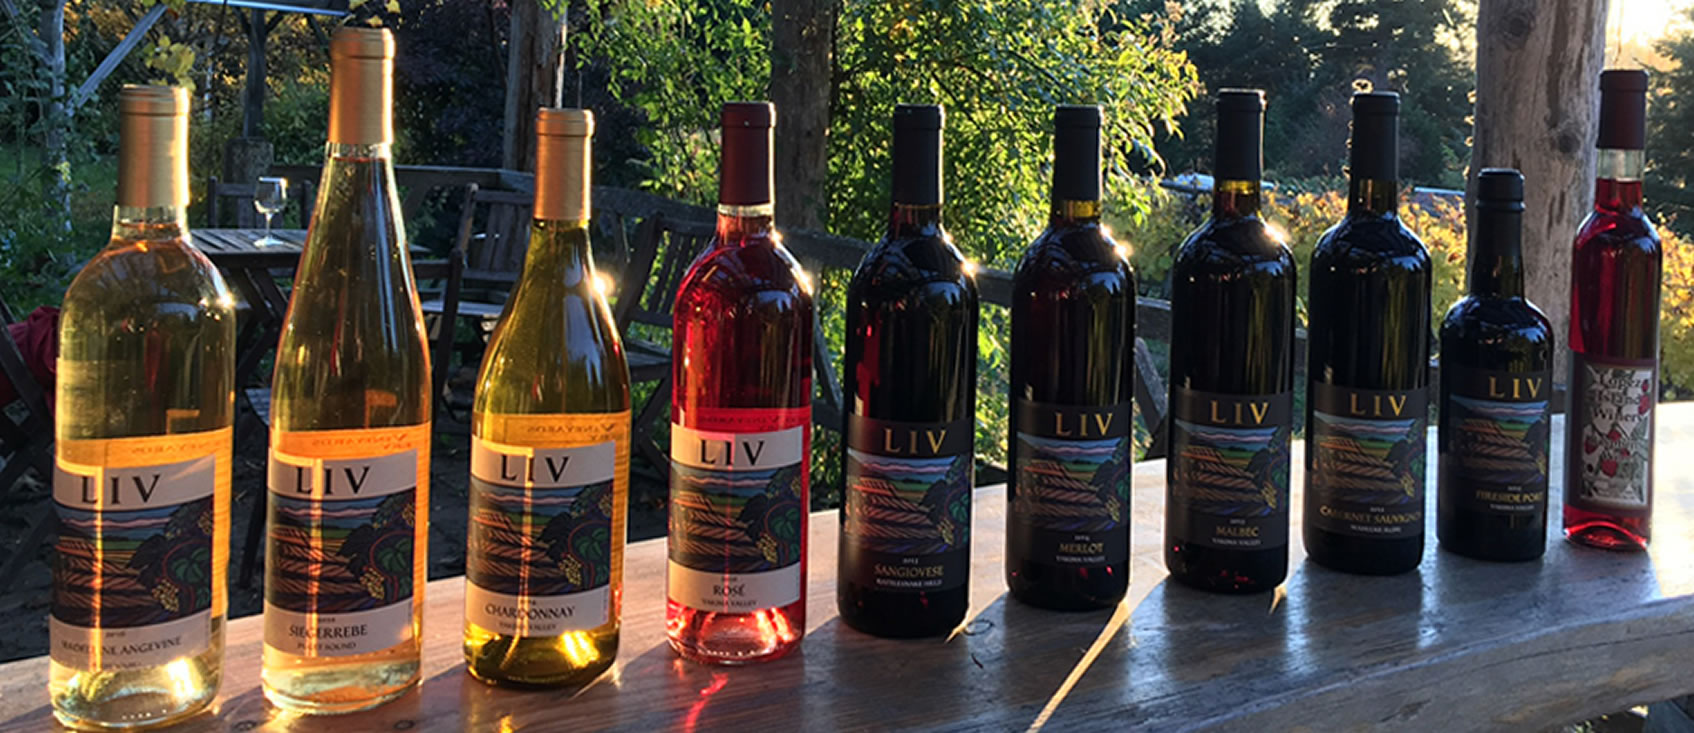 lopez island wine wines vintage winery vineyard organically grown organic